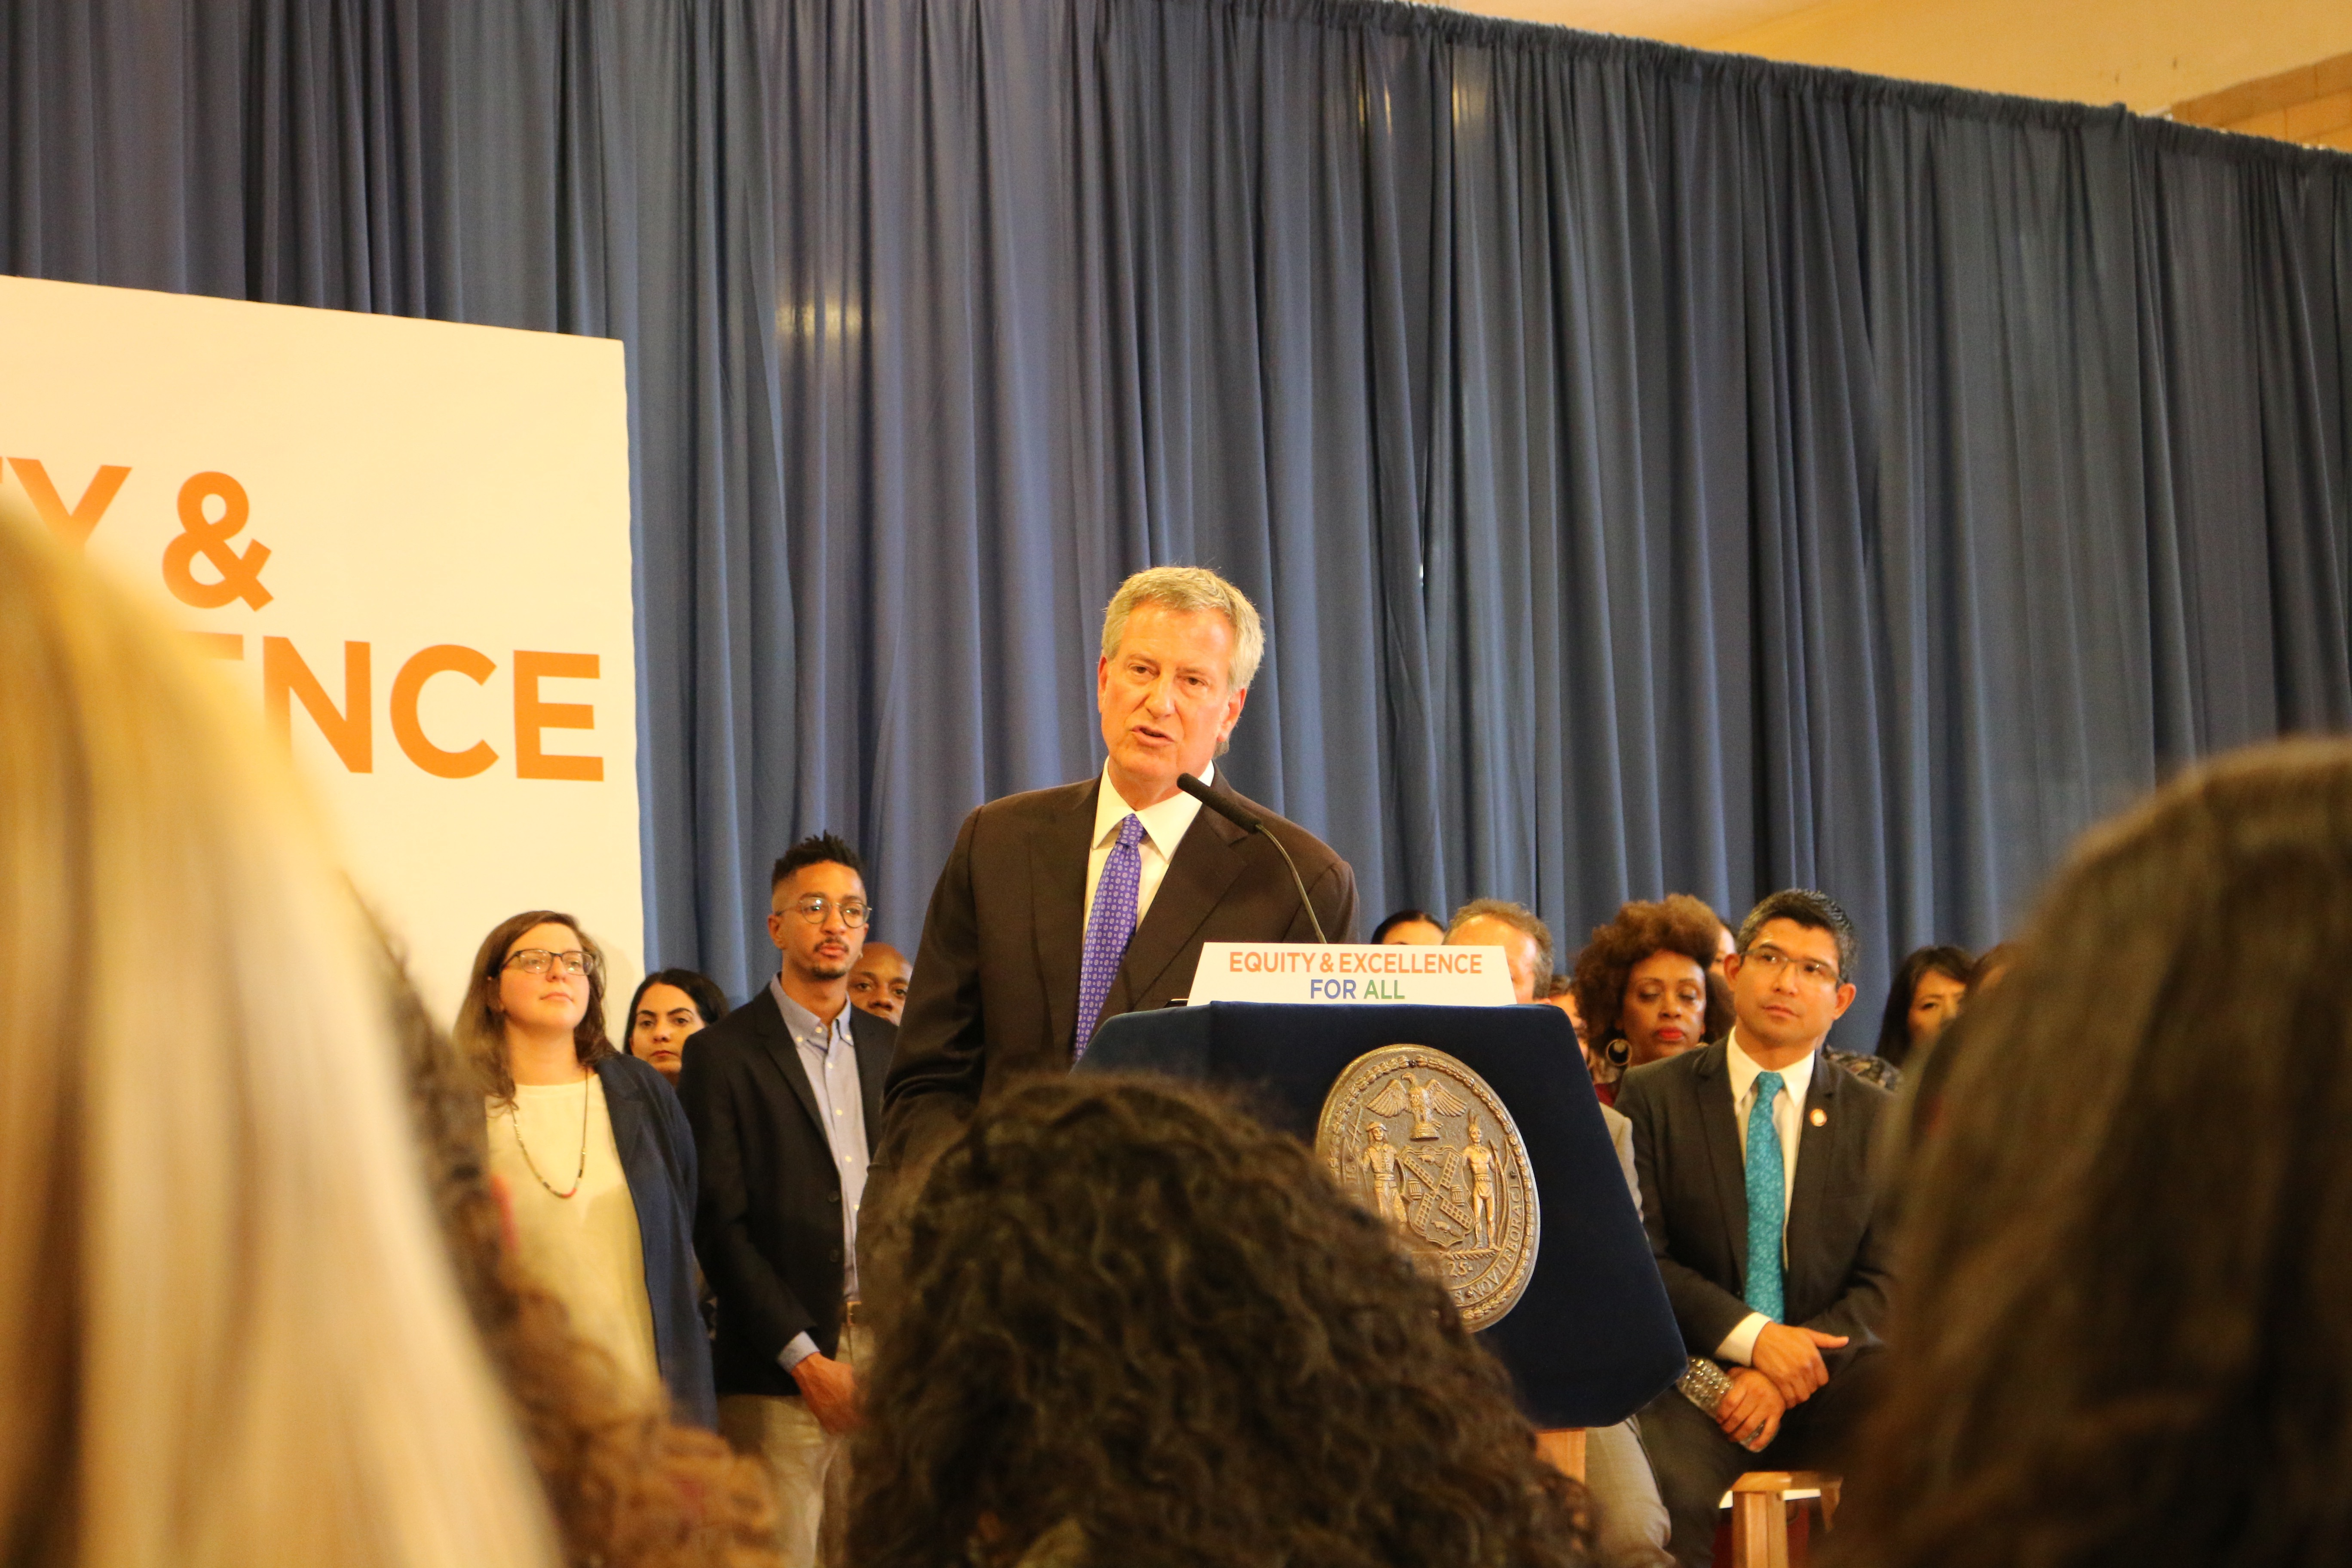 At a September 2018 press conference at M.S. 51 in Park Slope, Mayor Bill de Blasio and schools Chancellor Richard Carranza approved an integration plan for District 15 middle schools.